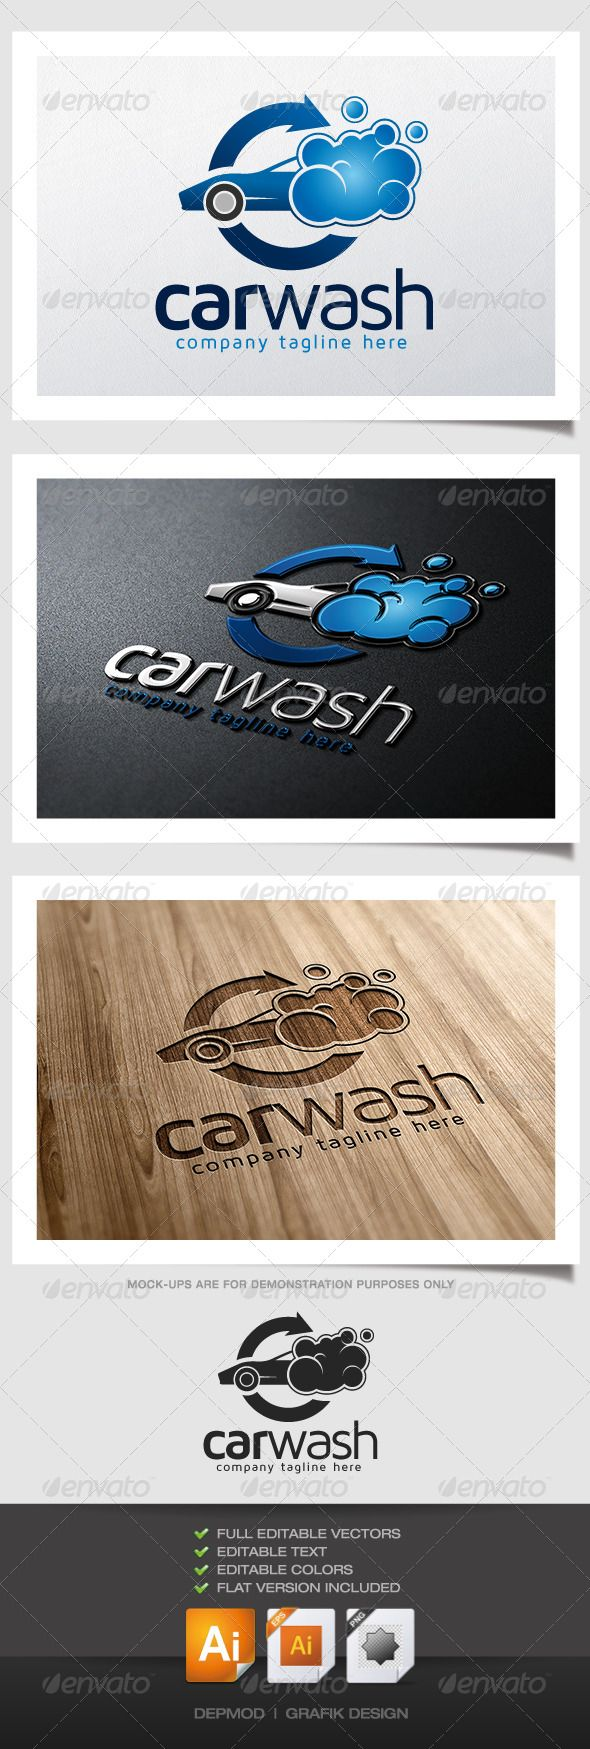 Car Wash Logo #GraphicRiver Logo of a car with bubbles on it (car wash). Can be used for many kind of project. Full vectors, this logo can be easily resize and colors can be changed to fit your colors project. Flat version for print also included. The font used is in a download file in the package. Font : .fontsquirrel /fonts/maven-pro Files provided : .ai (CC and CS), .eps, .jpg, .png (transparent) Created: 30June13 GraphicsFilesIncluded: TransparentPNG #JPGImage #VectorEPS #AIIllustrator…